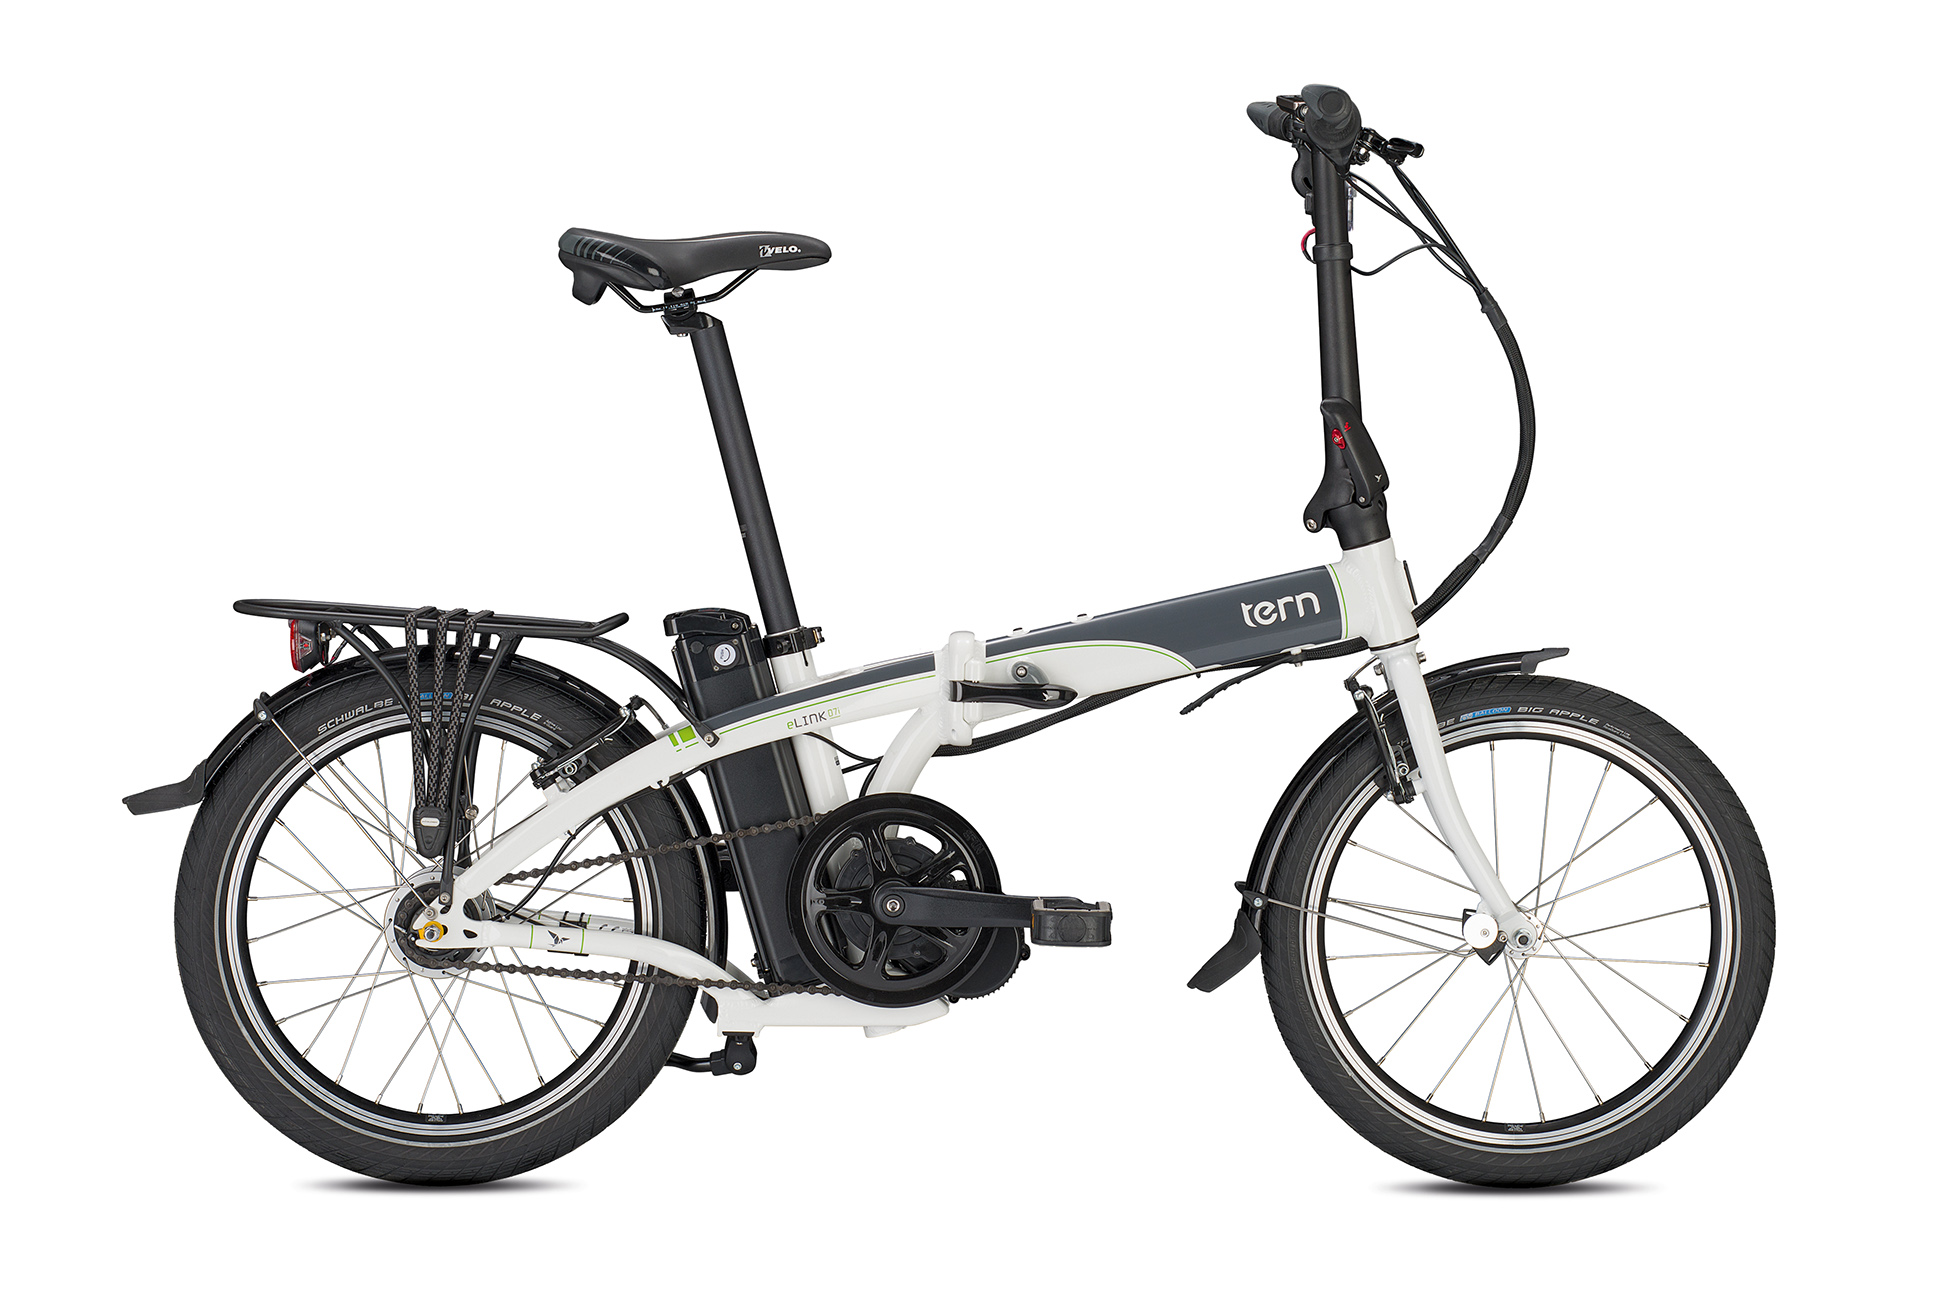 elink tern folding bikes worldwide. Black Bedroom Furniture Sets. Home Design Ideas